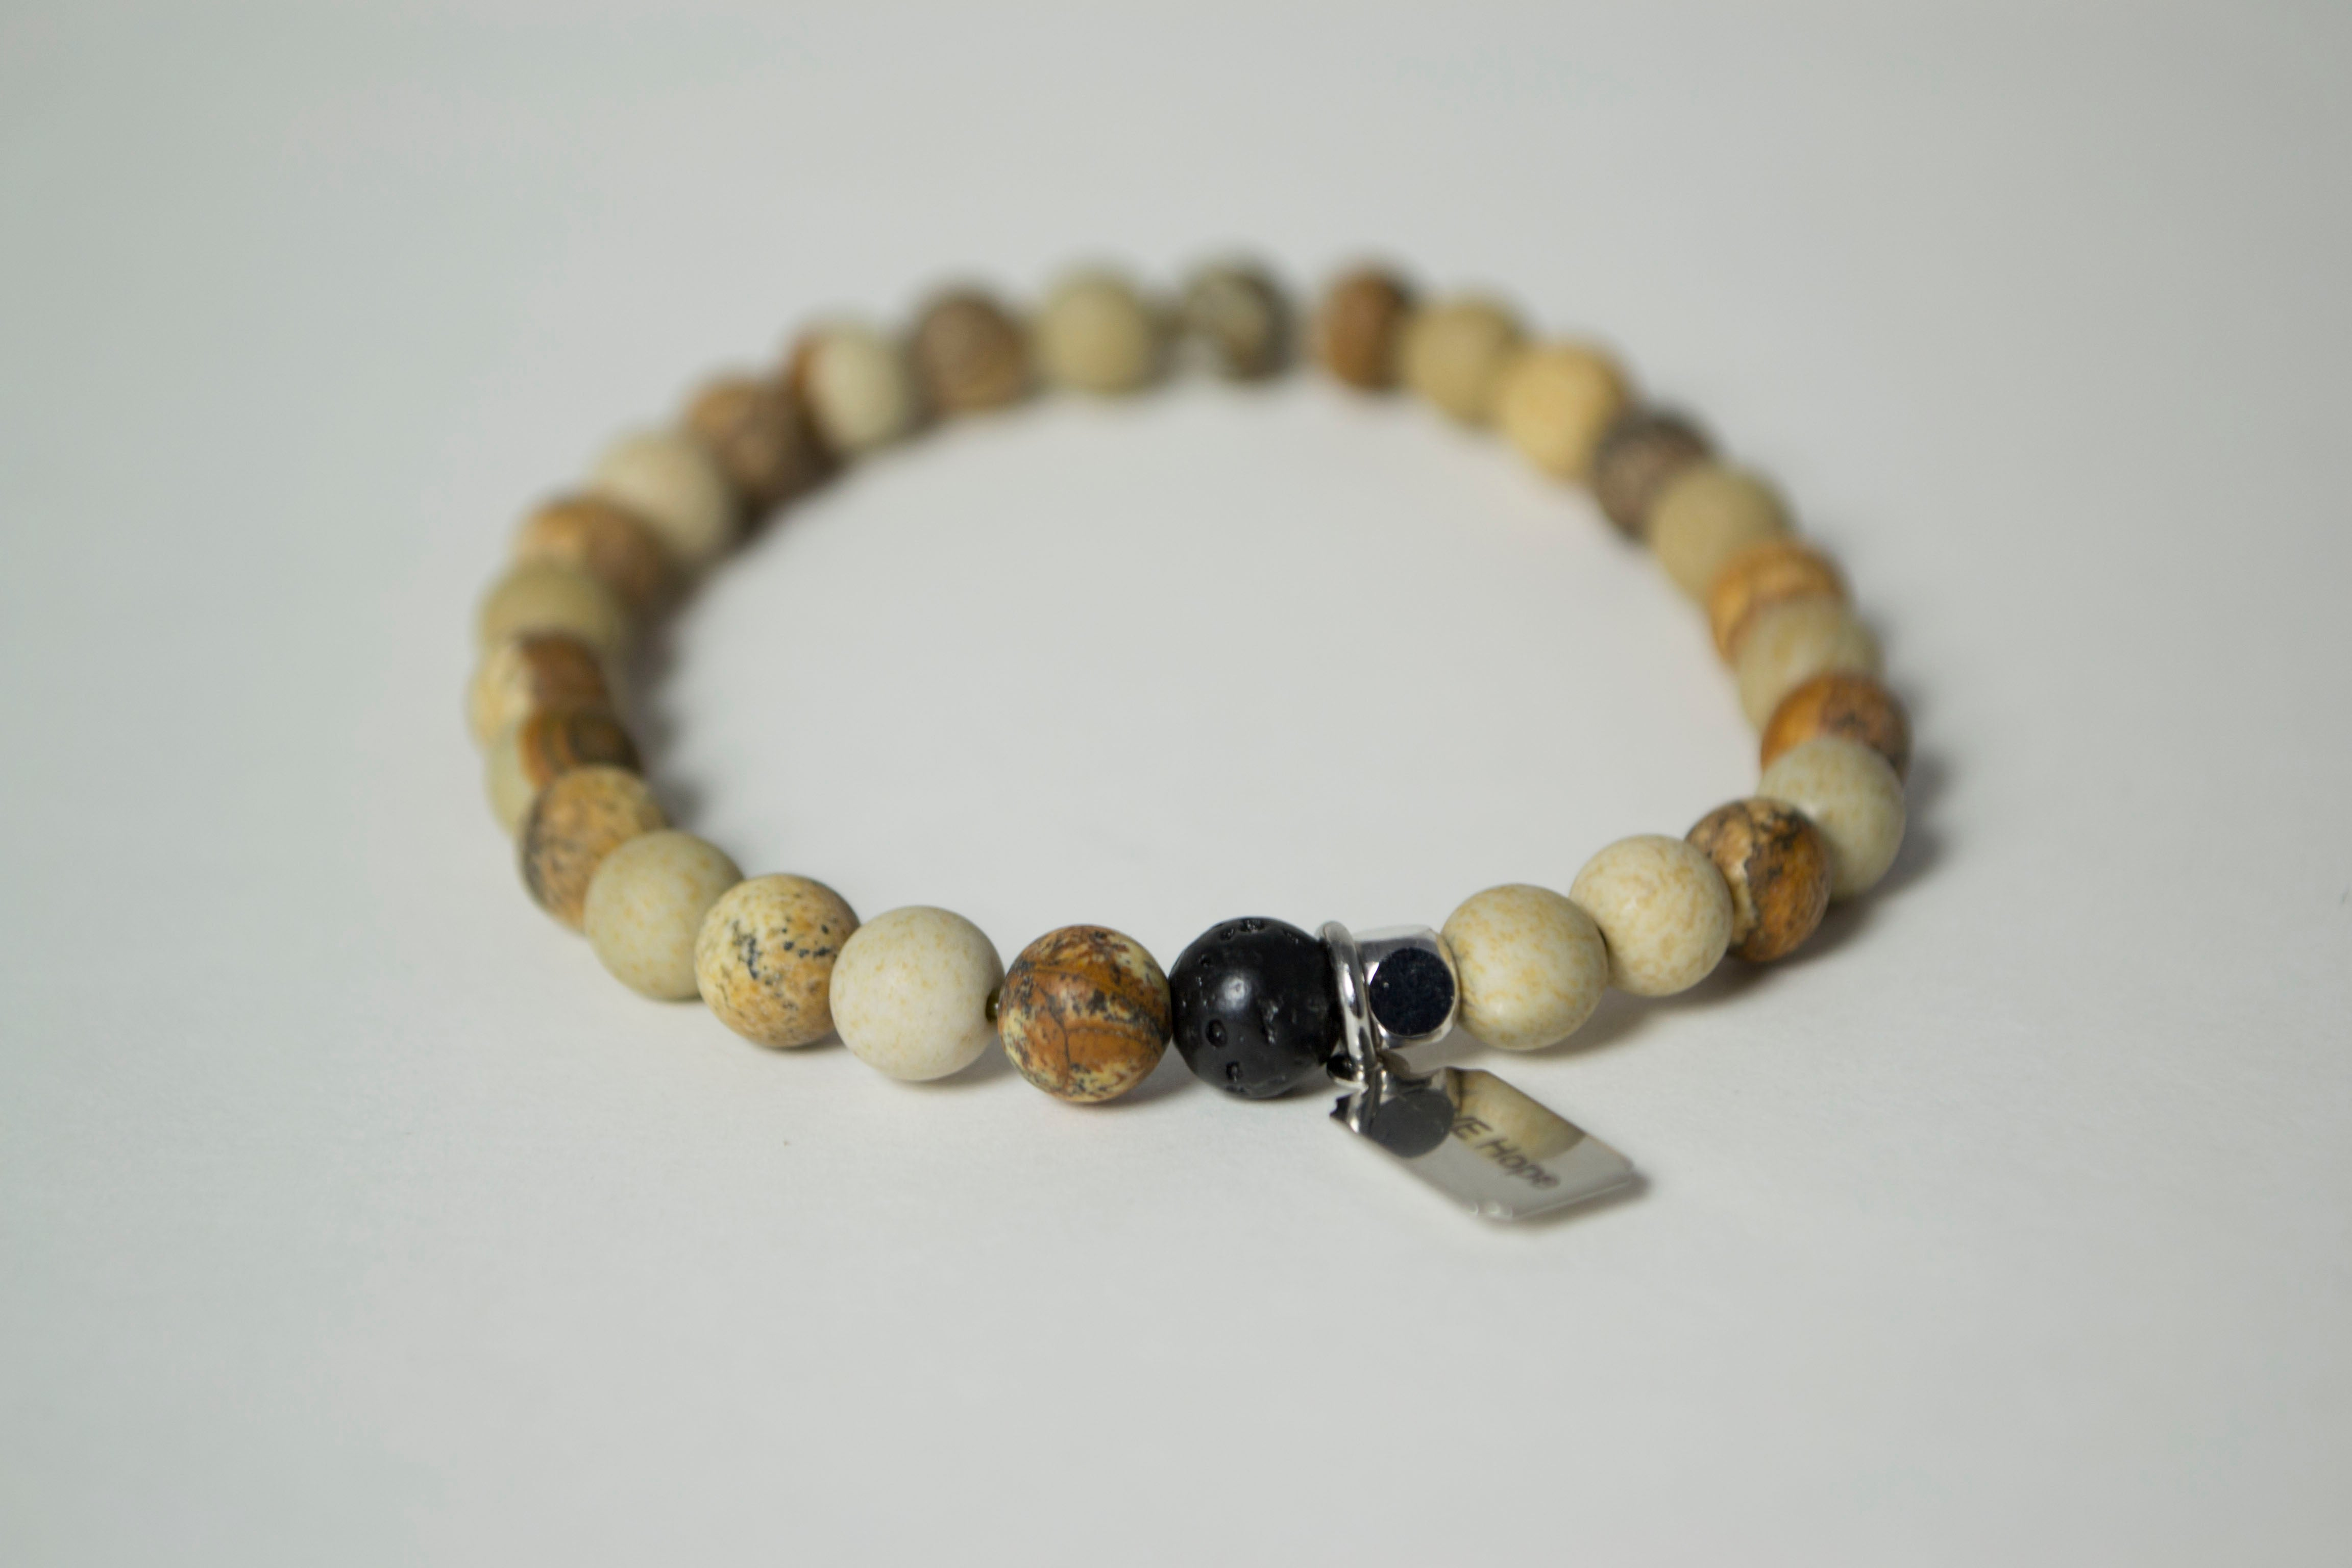 Rear view of the natural stones in the Infused Picture Jasper bracelet with details of the color and texture, including detail of the infusible Lava Stone bead. In the background is a blurred view of the front of the bracelet.